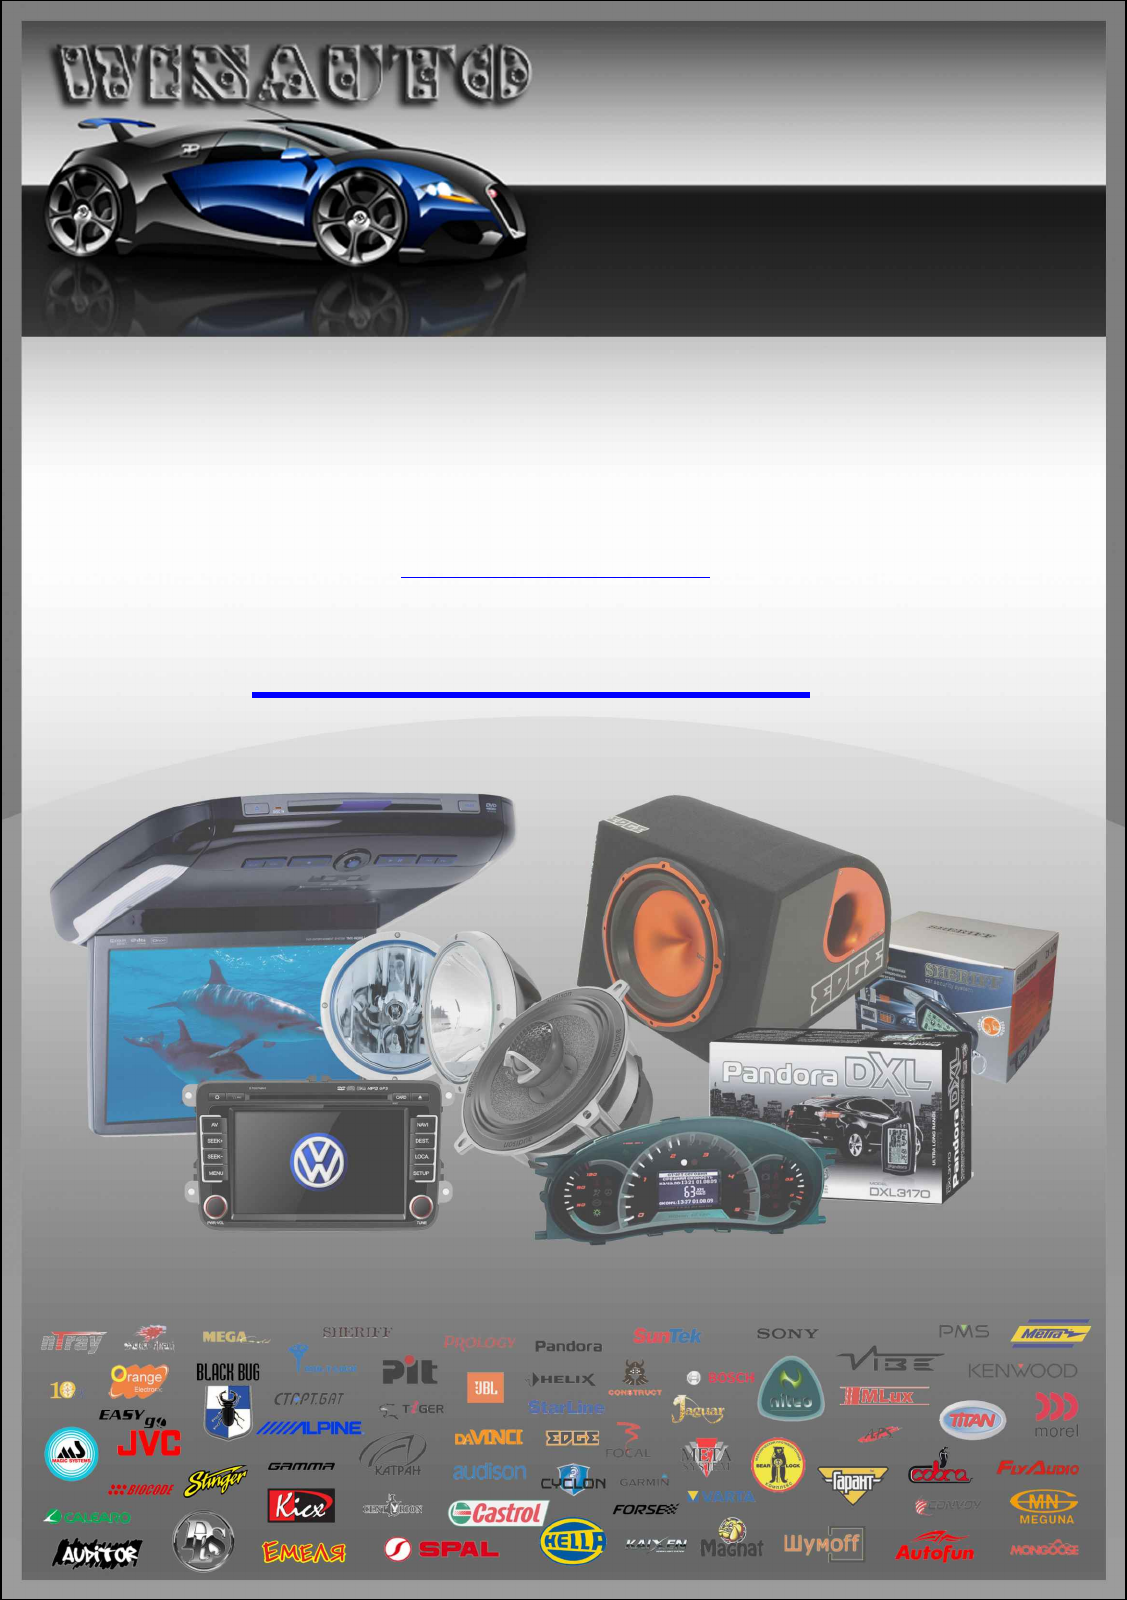 Sony Cdx Gt290 Wiring Diagram Gt210 Wire Pioneer Cd Player On Xplod Car Stereo System User Guide Manualsonline Com